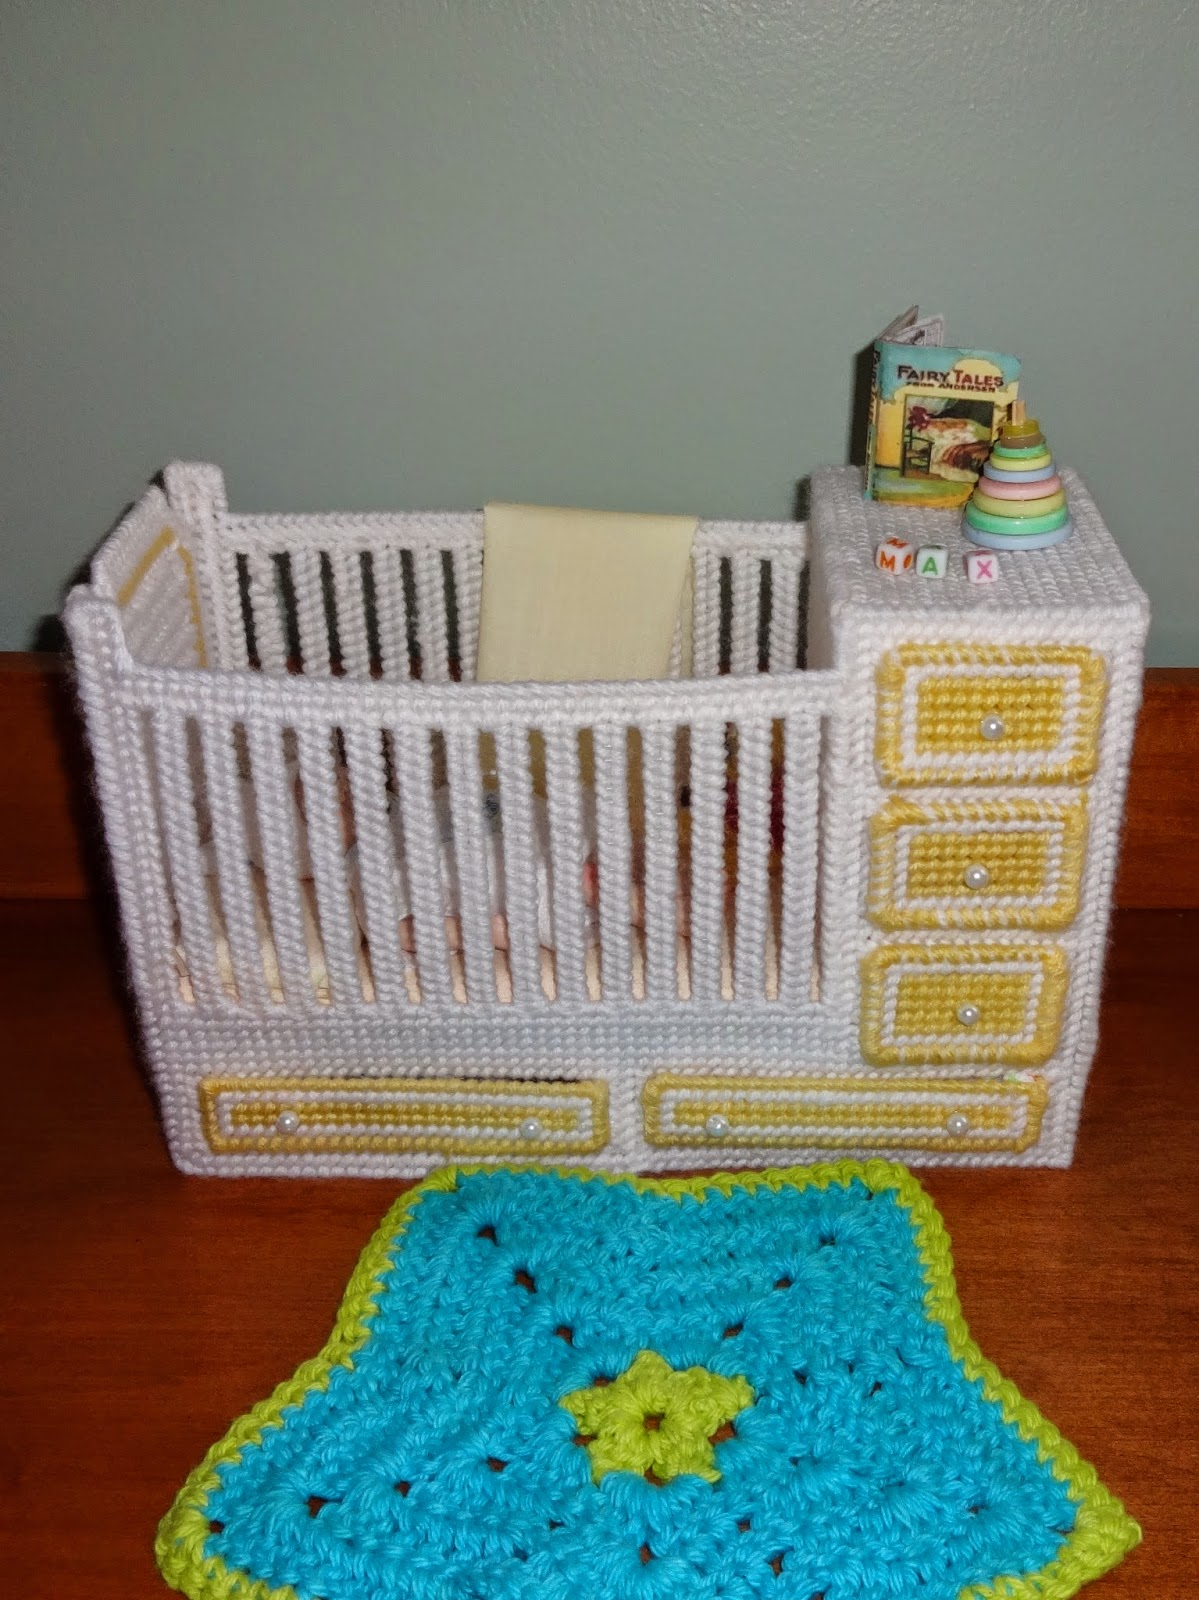 Crafty Kat Plastic Canvas Crib Mini Toys And Sewing For